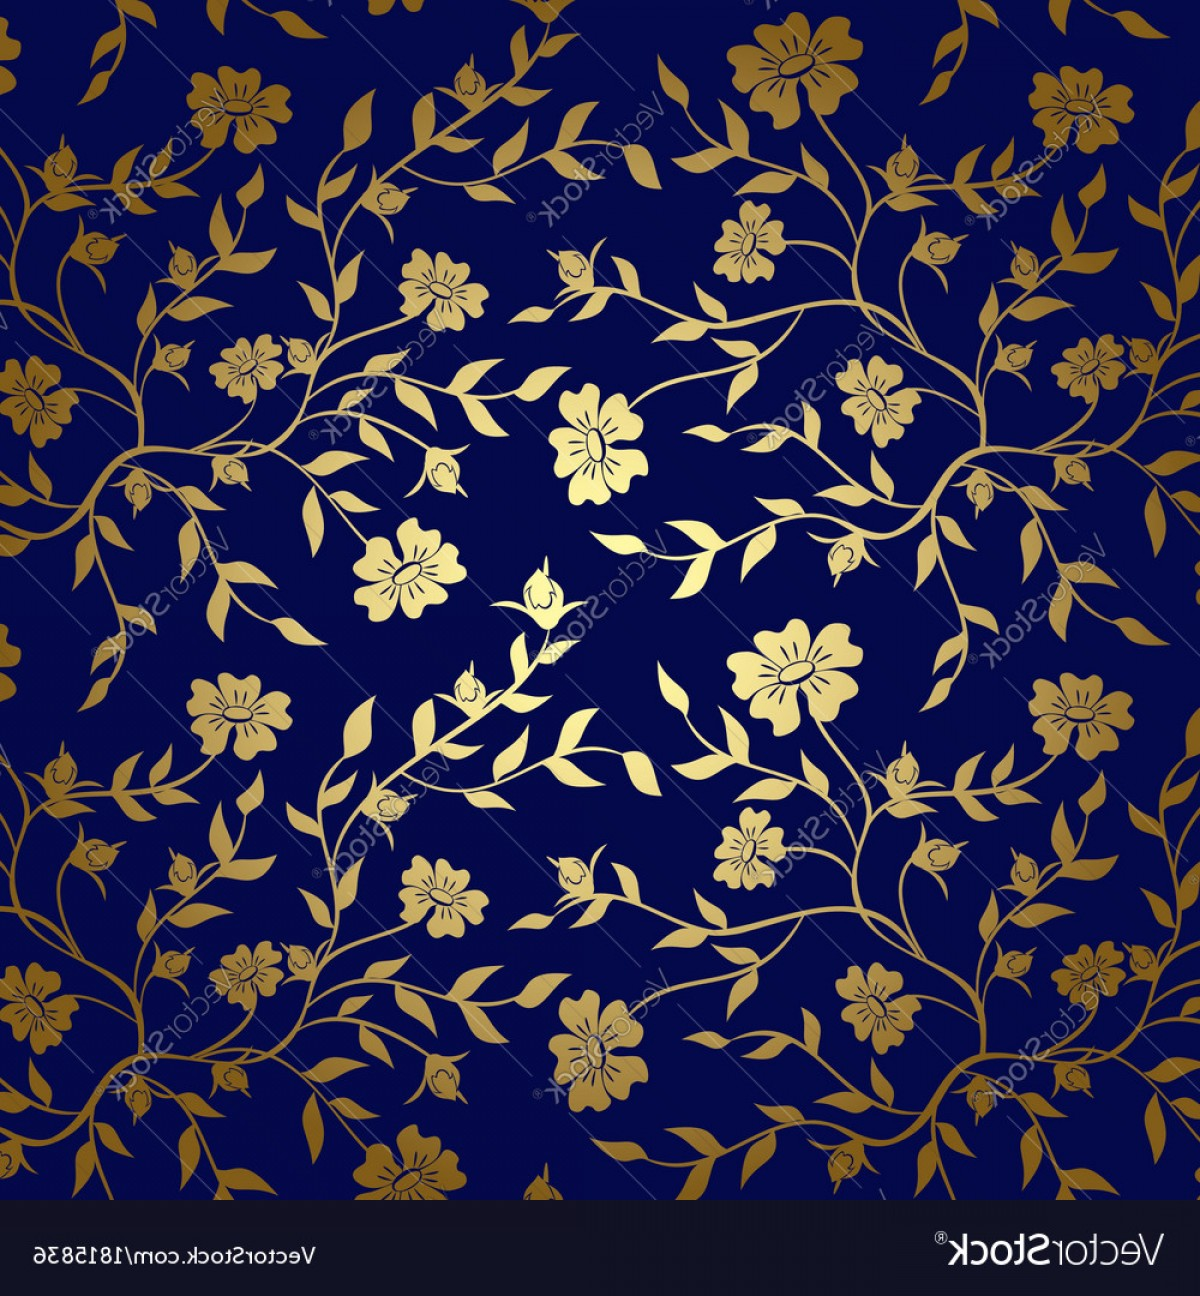 Gold And Blue Flower Vector: Blue And Gold Floral Texture For Background Vector